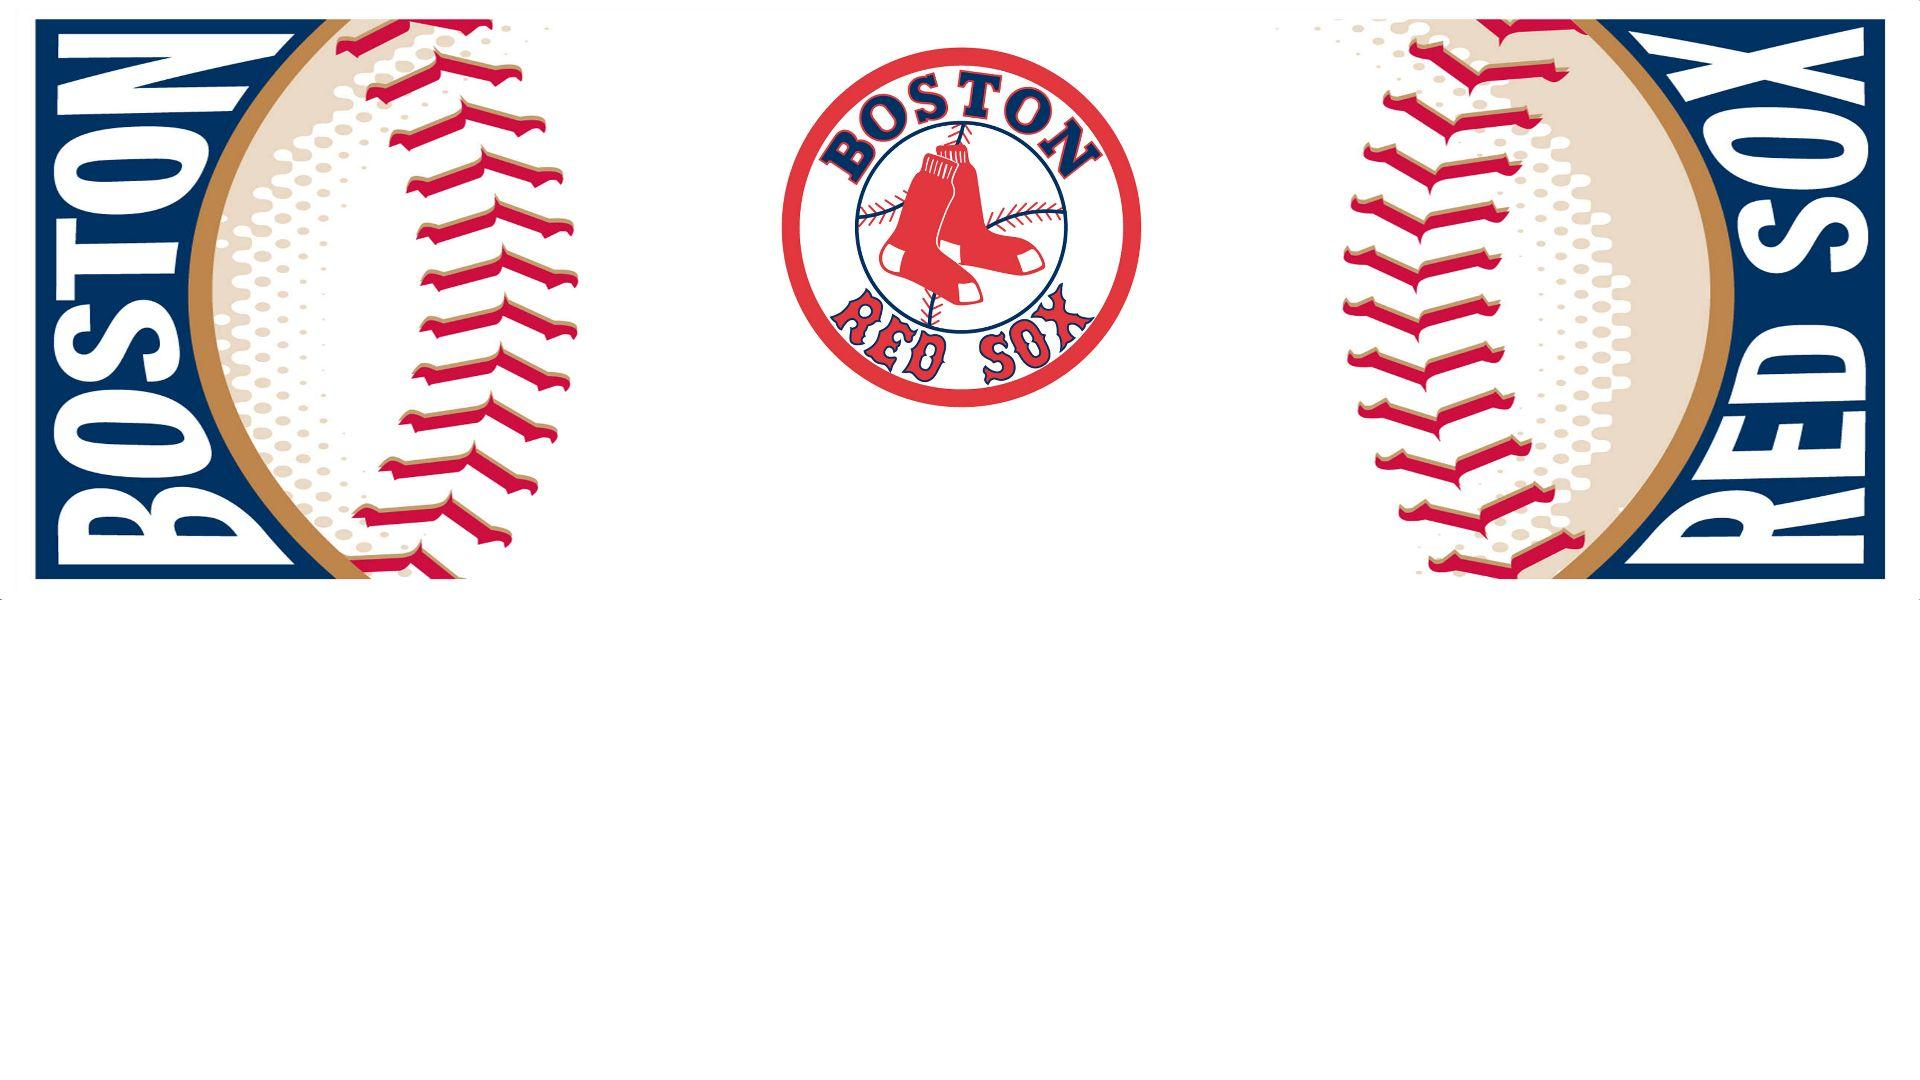 Boston Red Sox Iphone Wallpaper | Free | Download